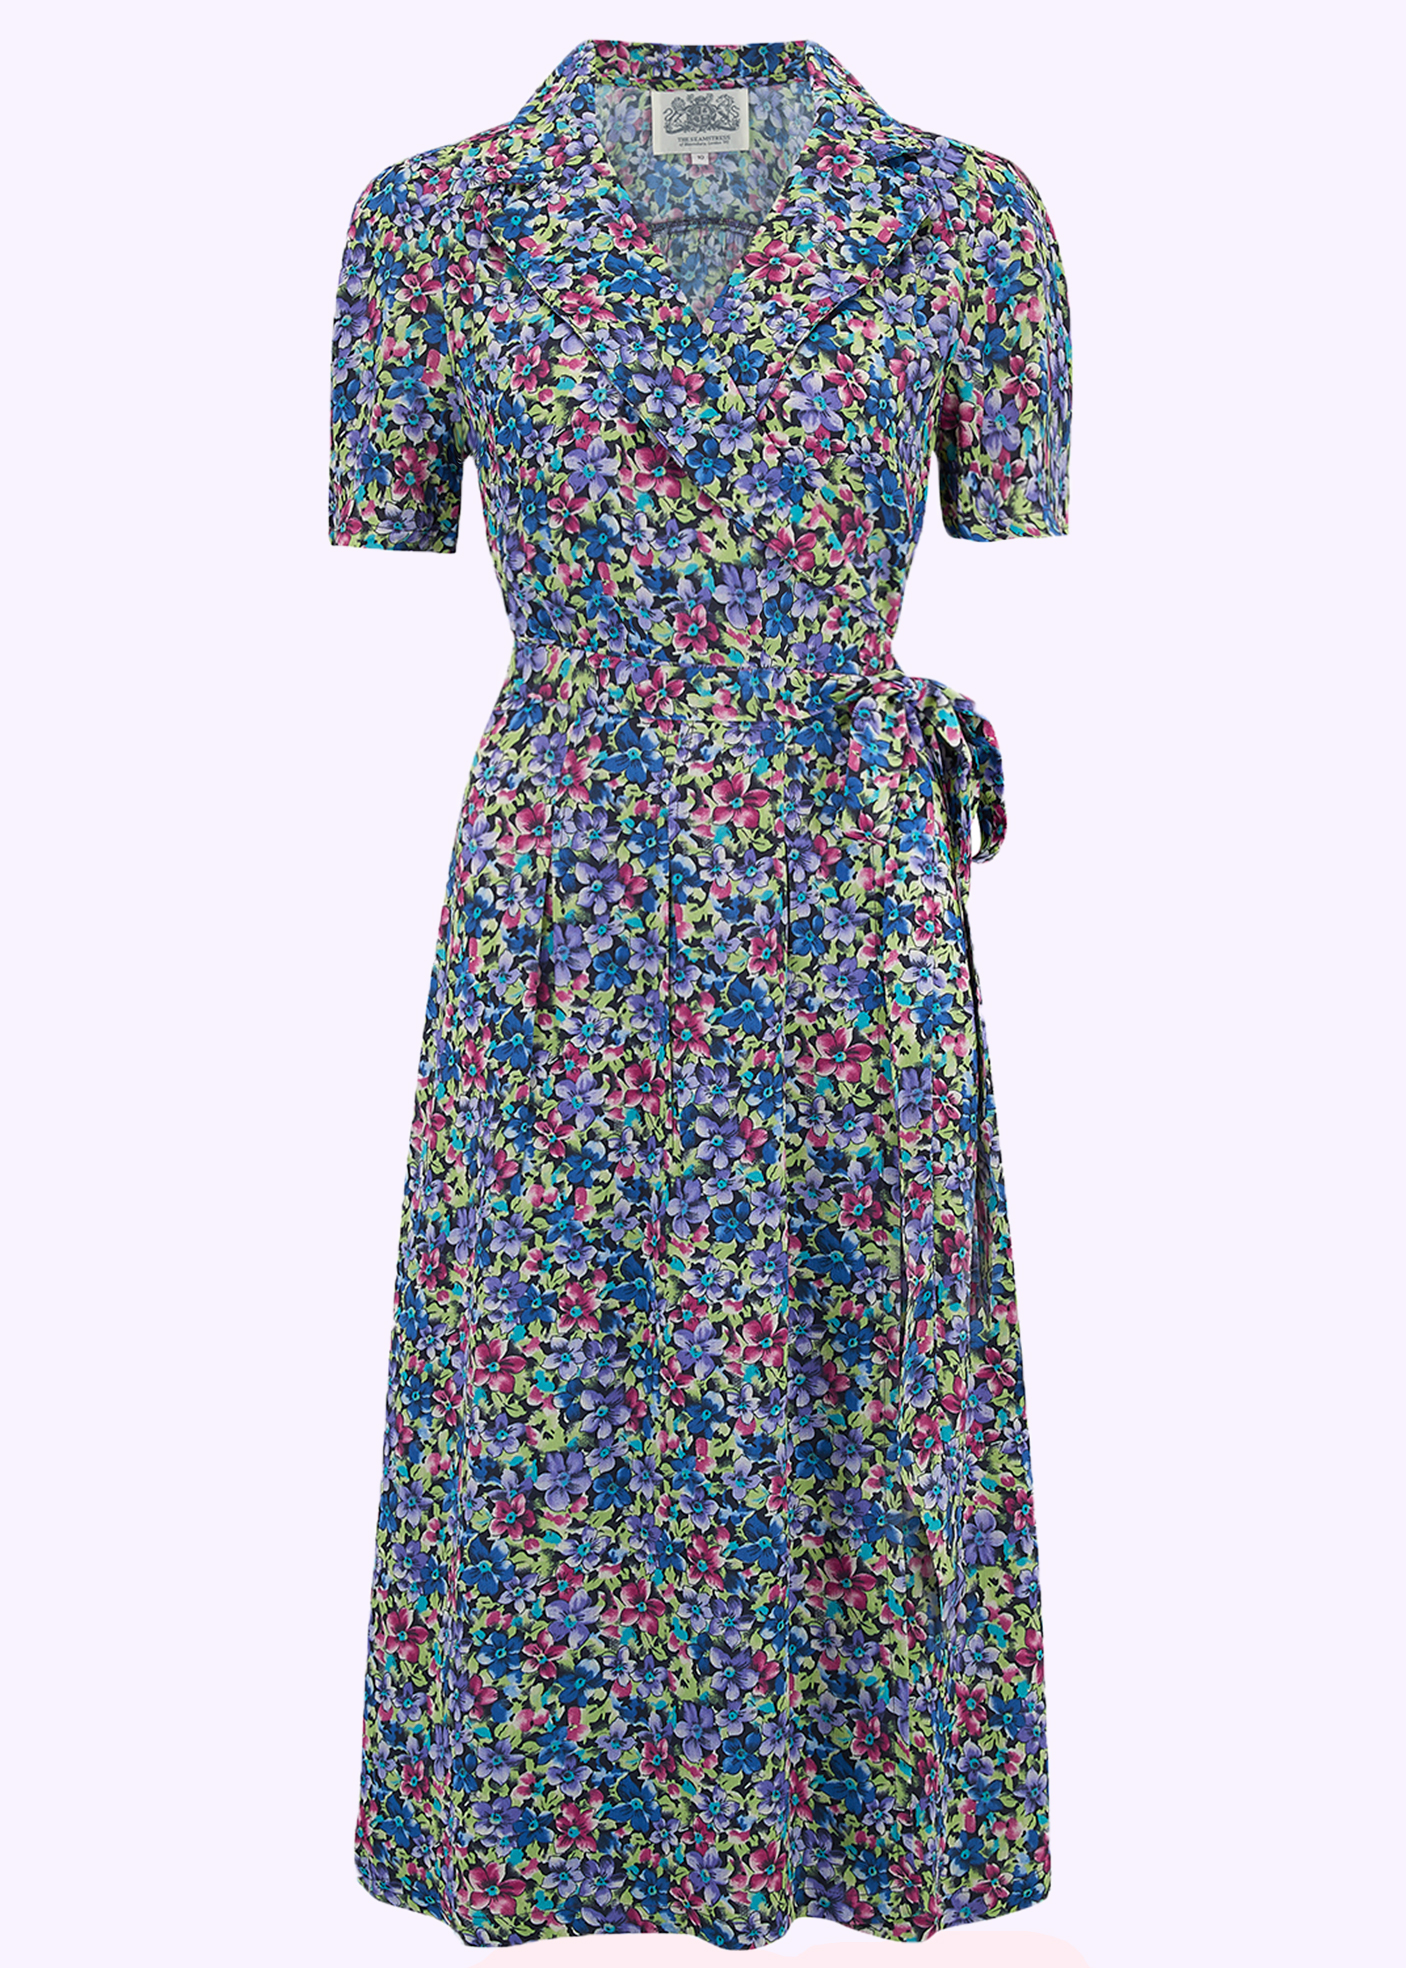 Floral vintage inspired wrap dress from seamstress of bloomsbury